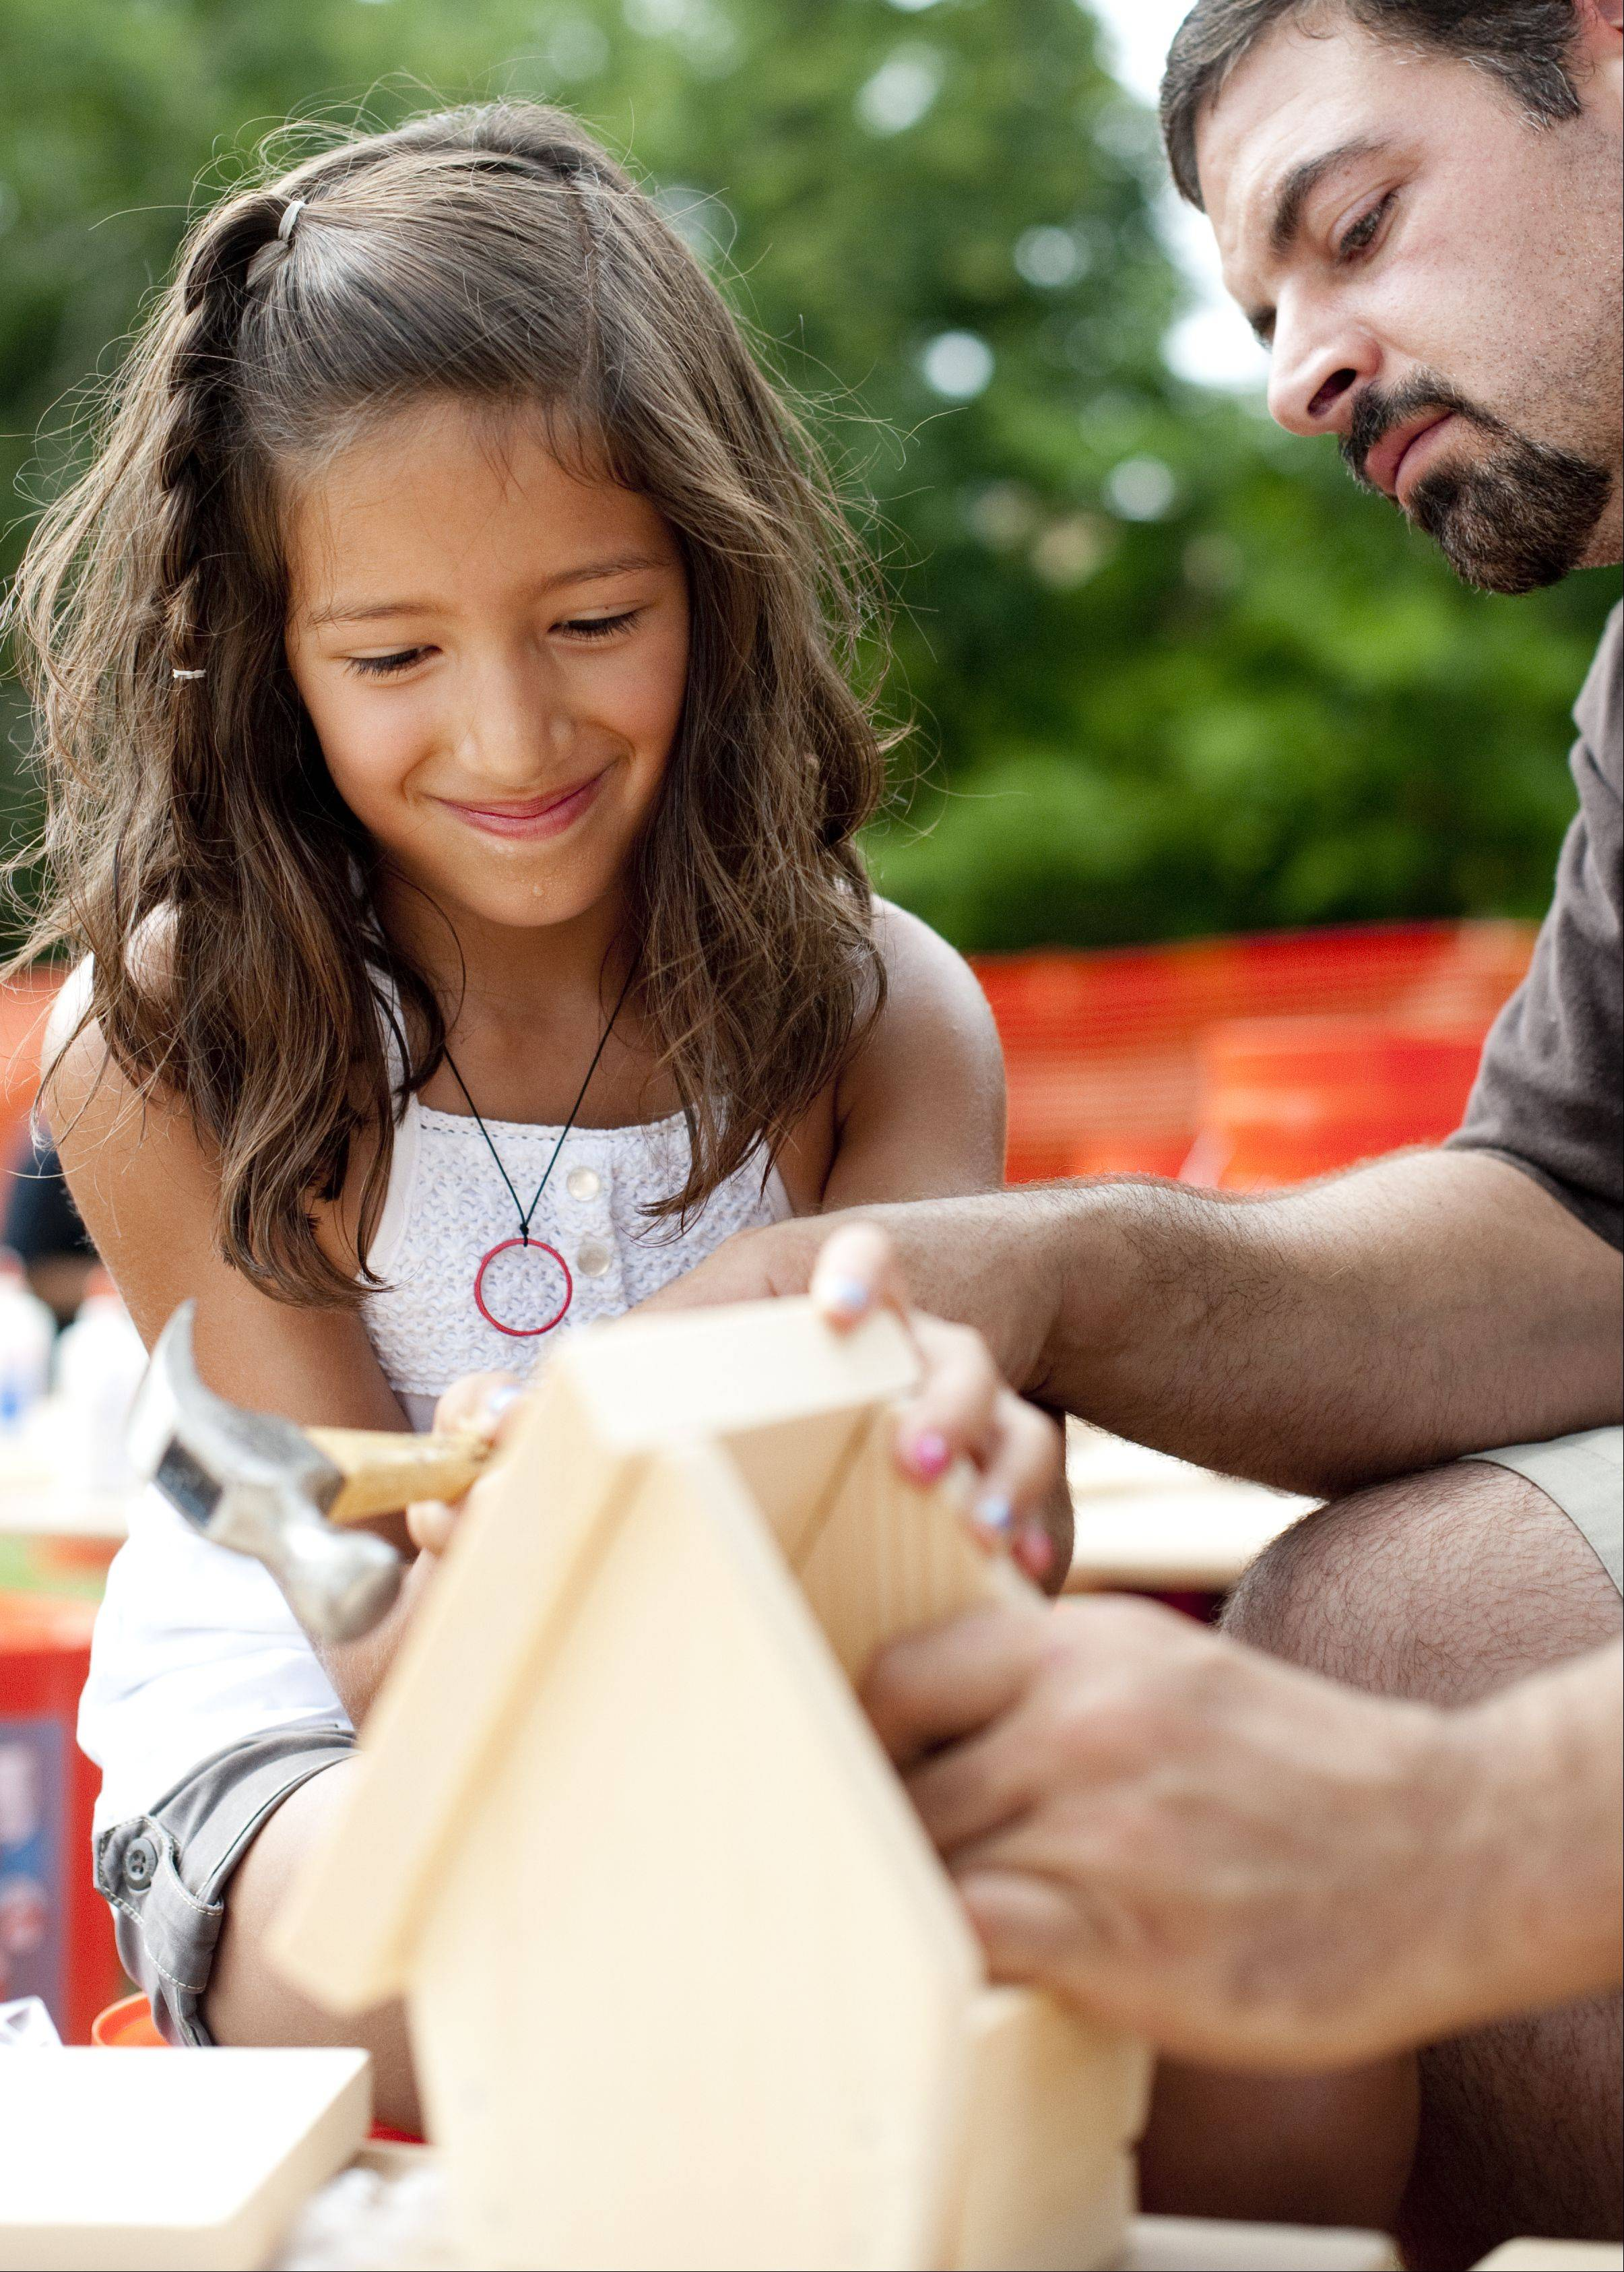 Alexis Celentano, 7, of Cary gets help from her father, David, while putting the roof on a birdhouse in the crafts area of the 52nd Algonquin Founders Days Sunday in Algonquin�s Towne Park.